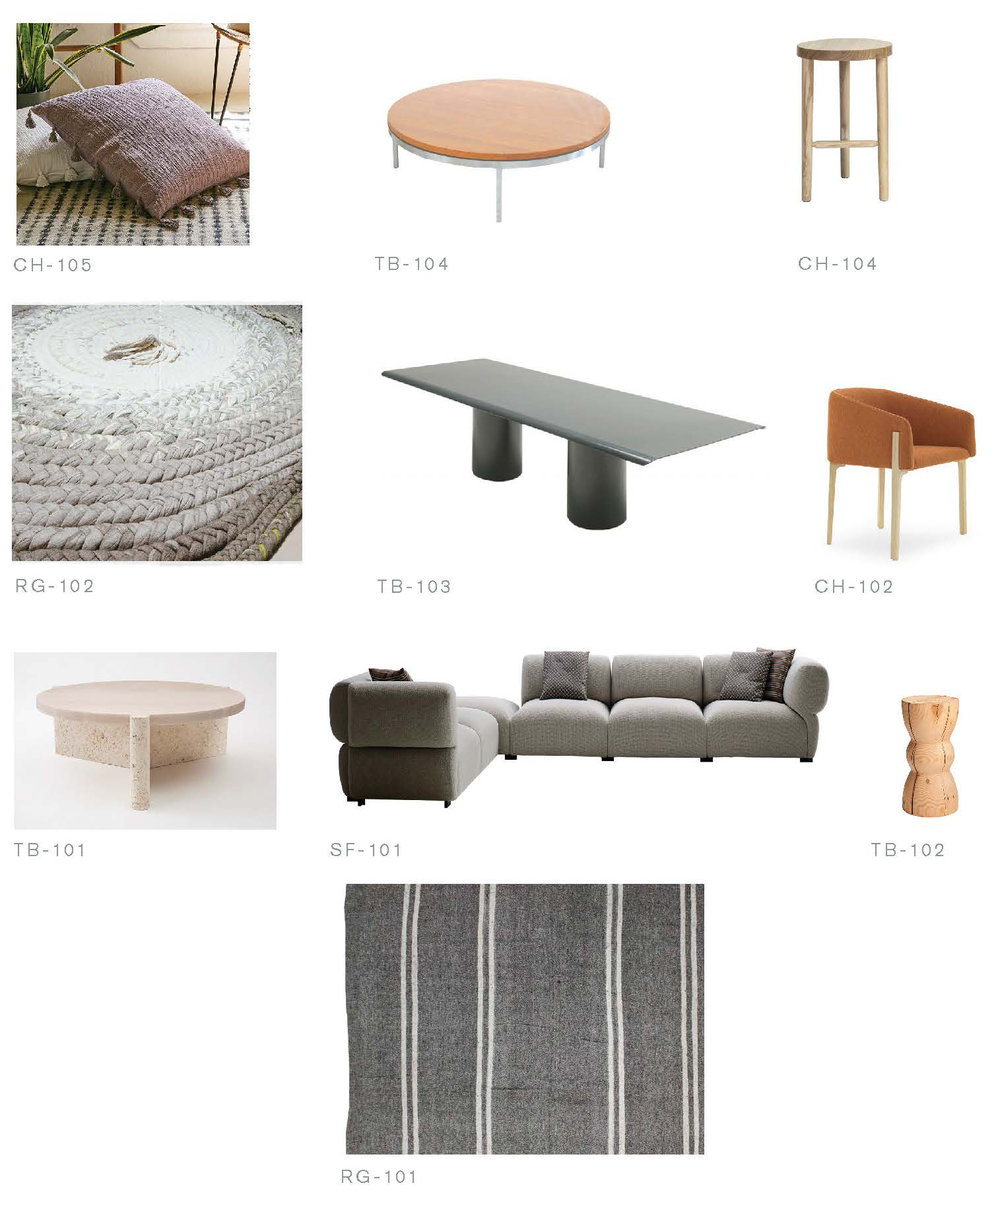 Furniture selections proposed as a suite for a living room.